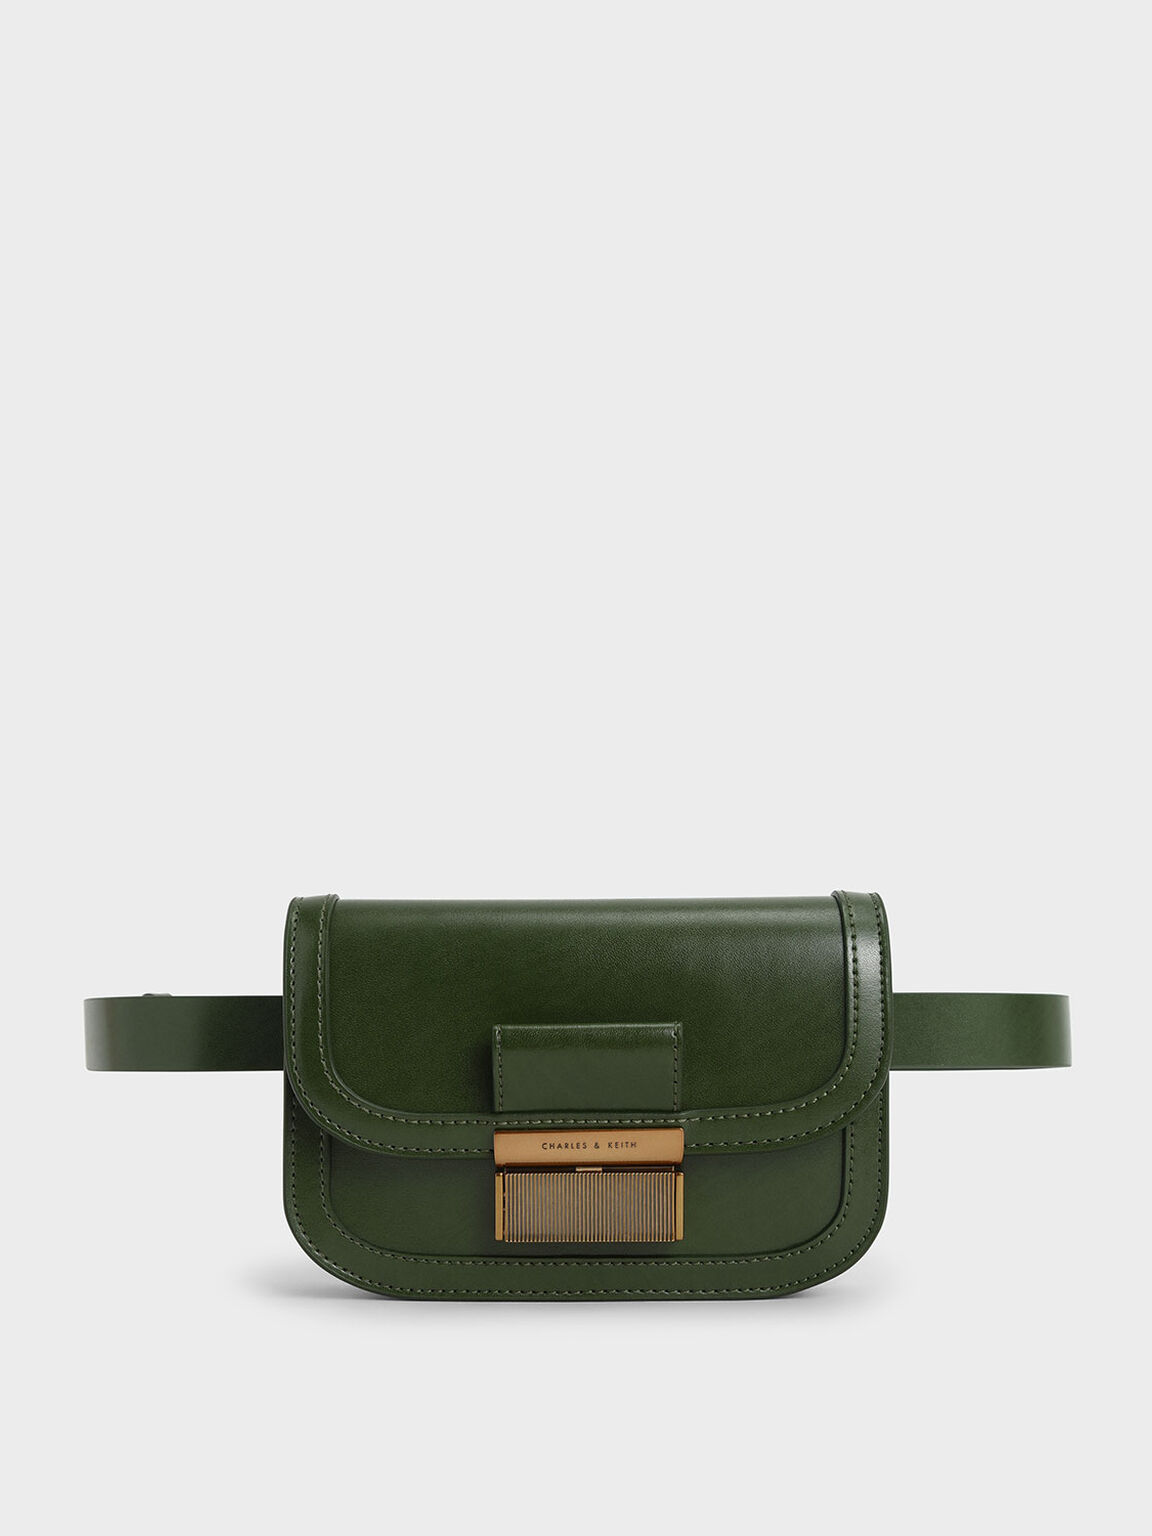 Metallic Push-Lock Front Flap Bag, Sage Green, hi-res